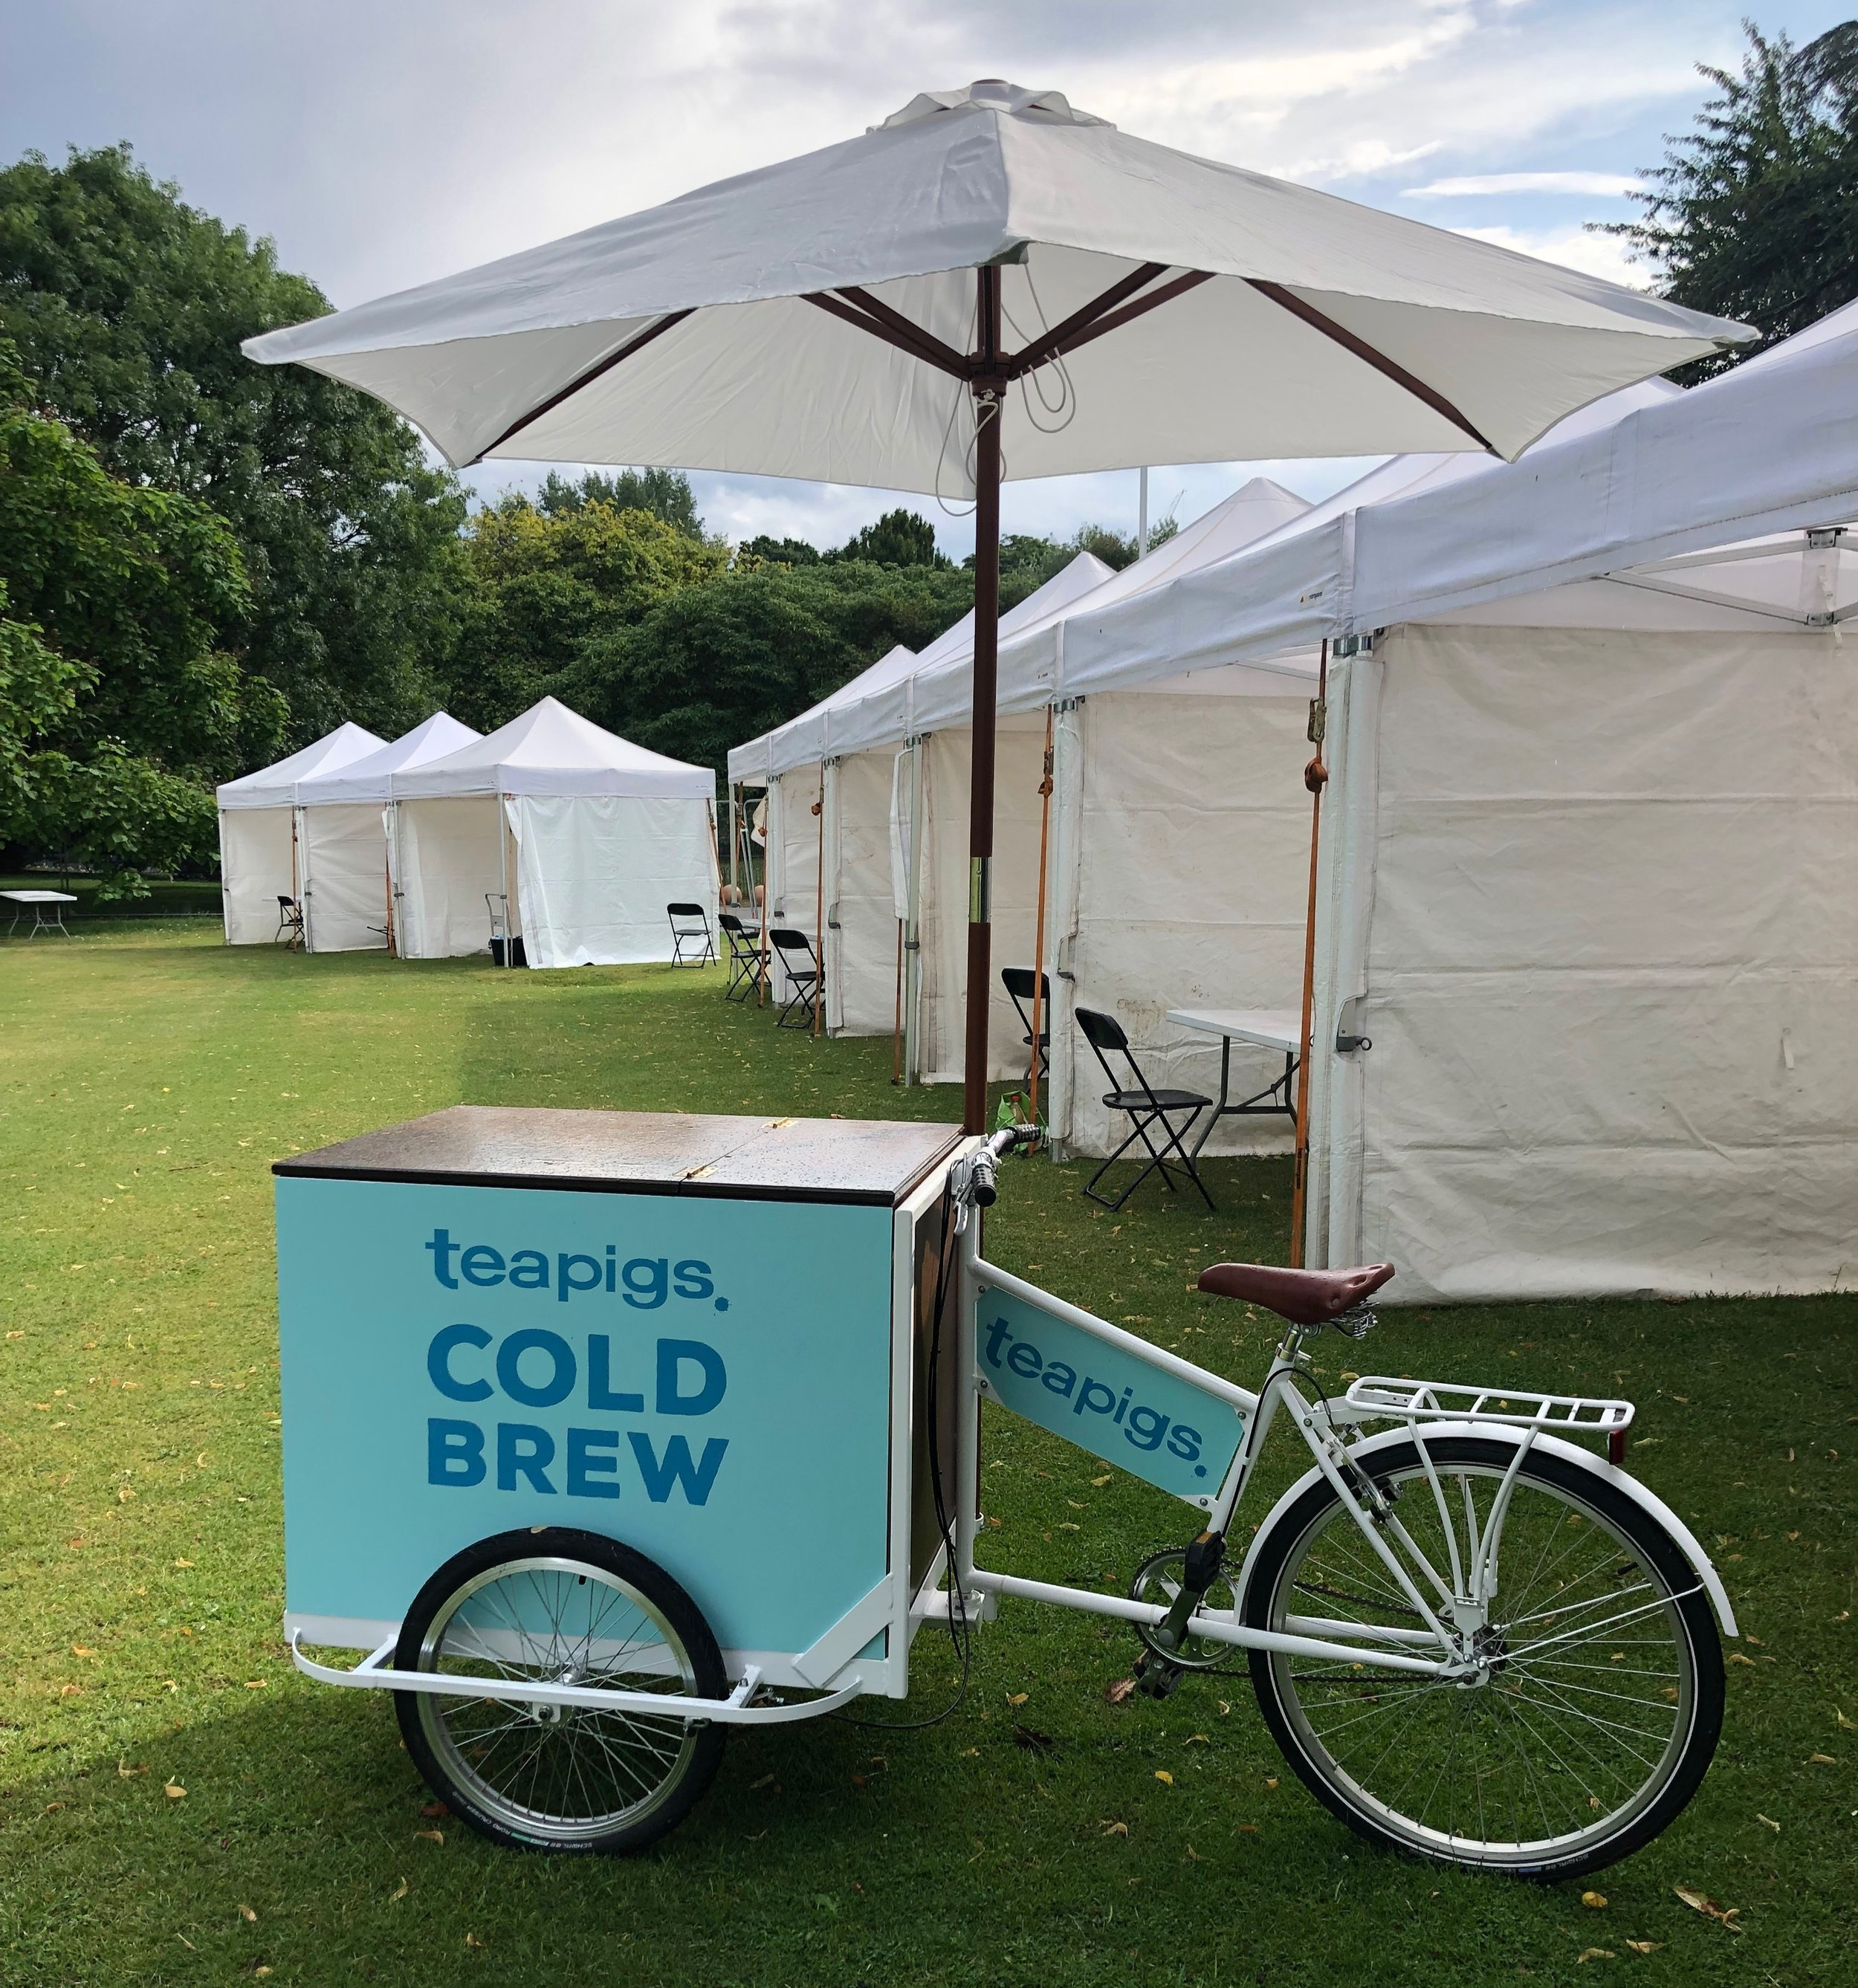 Quirky+Group+Branded+Tricycle+Bar+for+Hire+-+Teapigs+branded+at+Wanderlust+festival